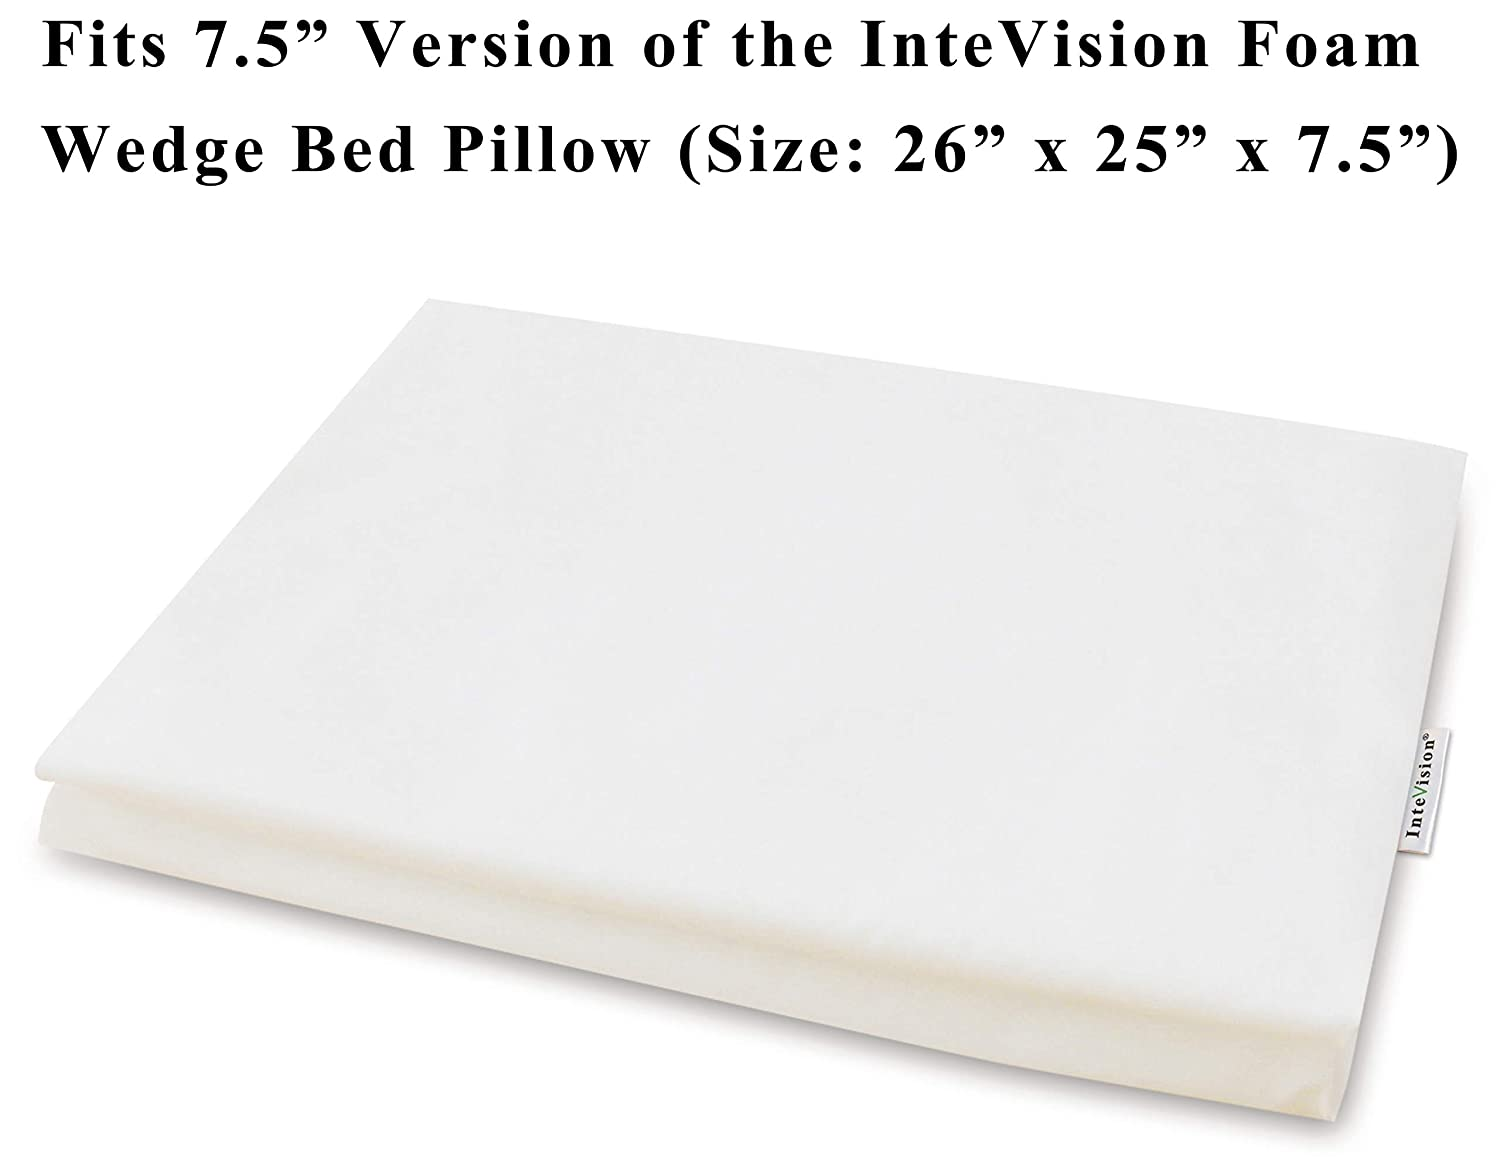 "InteVision 400 Thread Count, 100% Egyptian Cotton Pillowcase. Designed to Fit The 7.5"" Version of The Foam Wedge Bed Pillow (26"" x 25"" x 7.5"")"